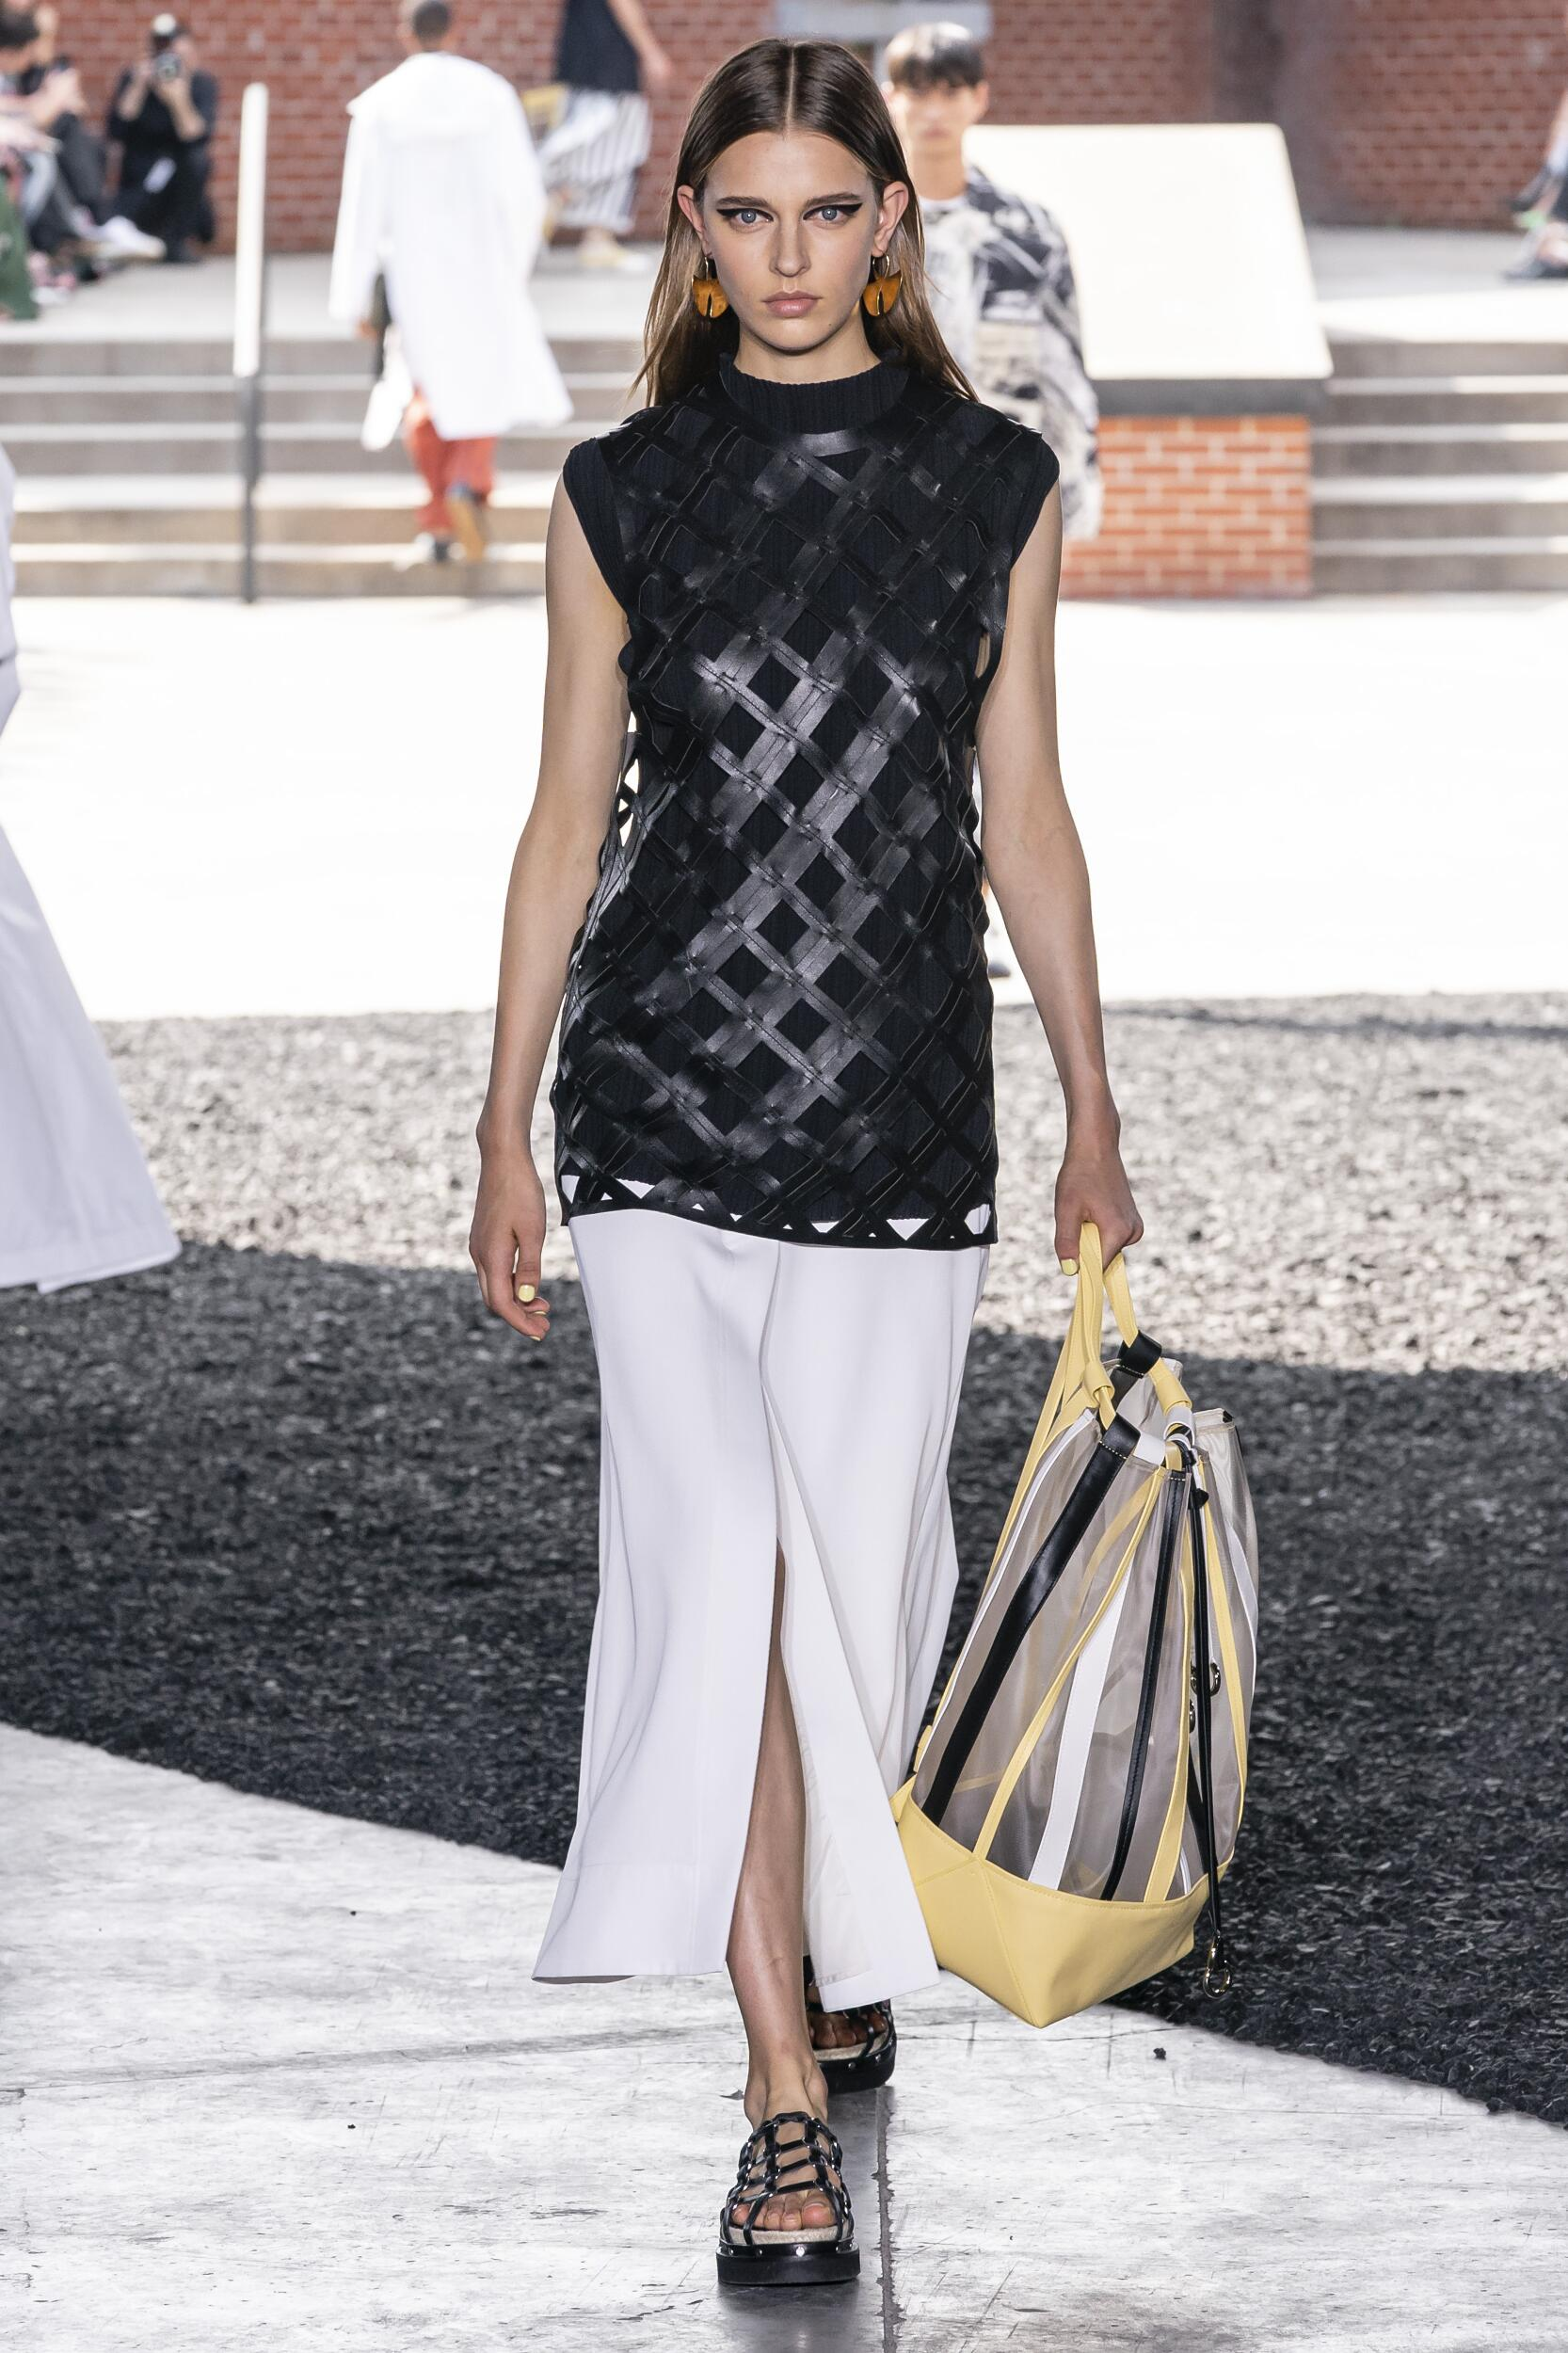 Spring 2020 Womenswear 3.1 Phillip Lim